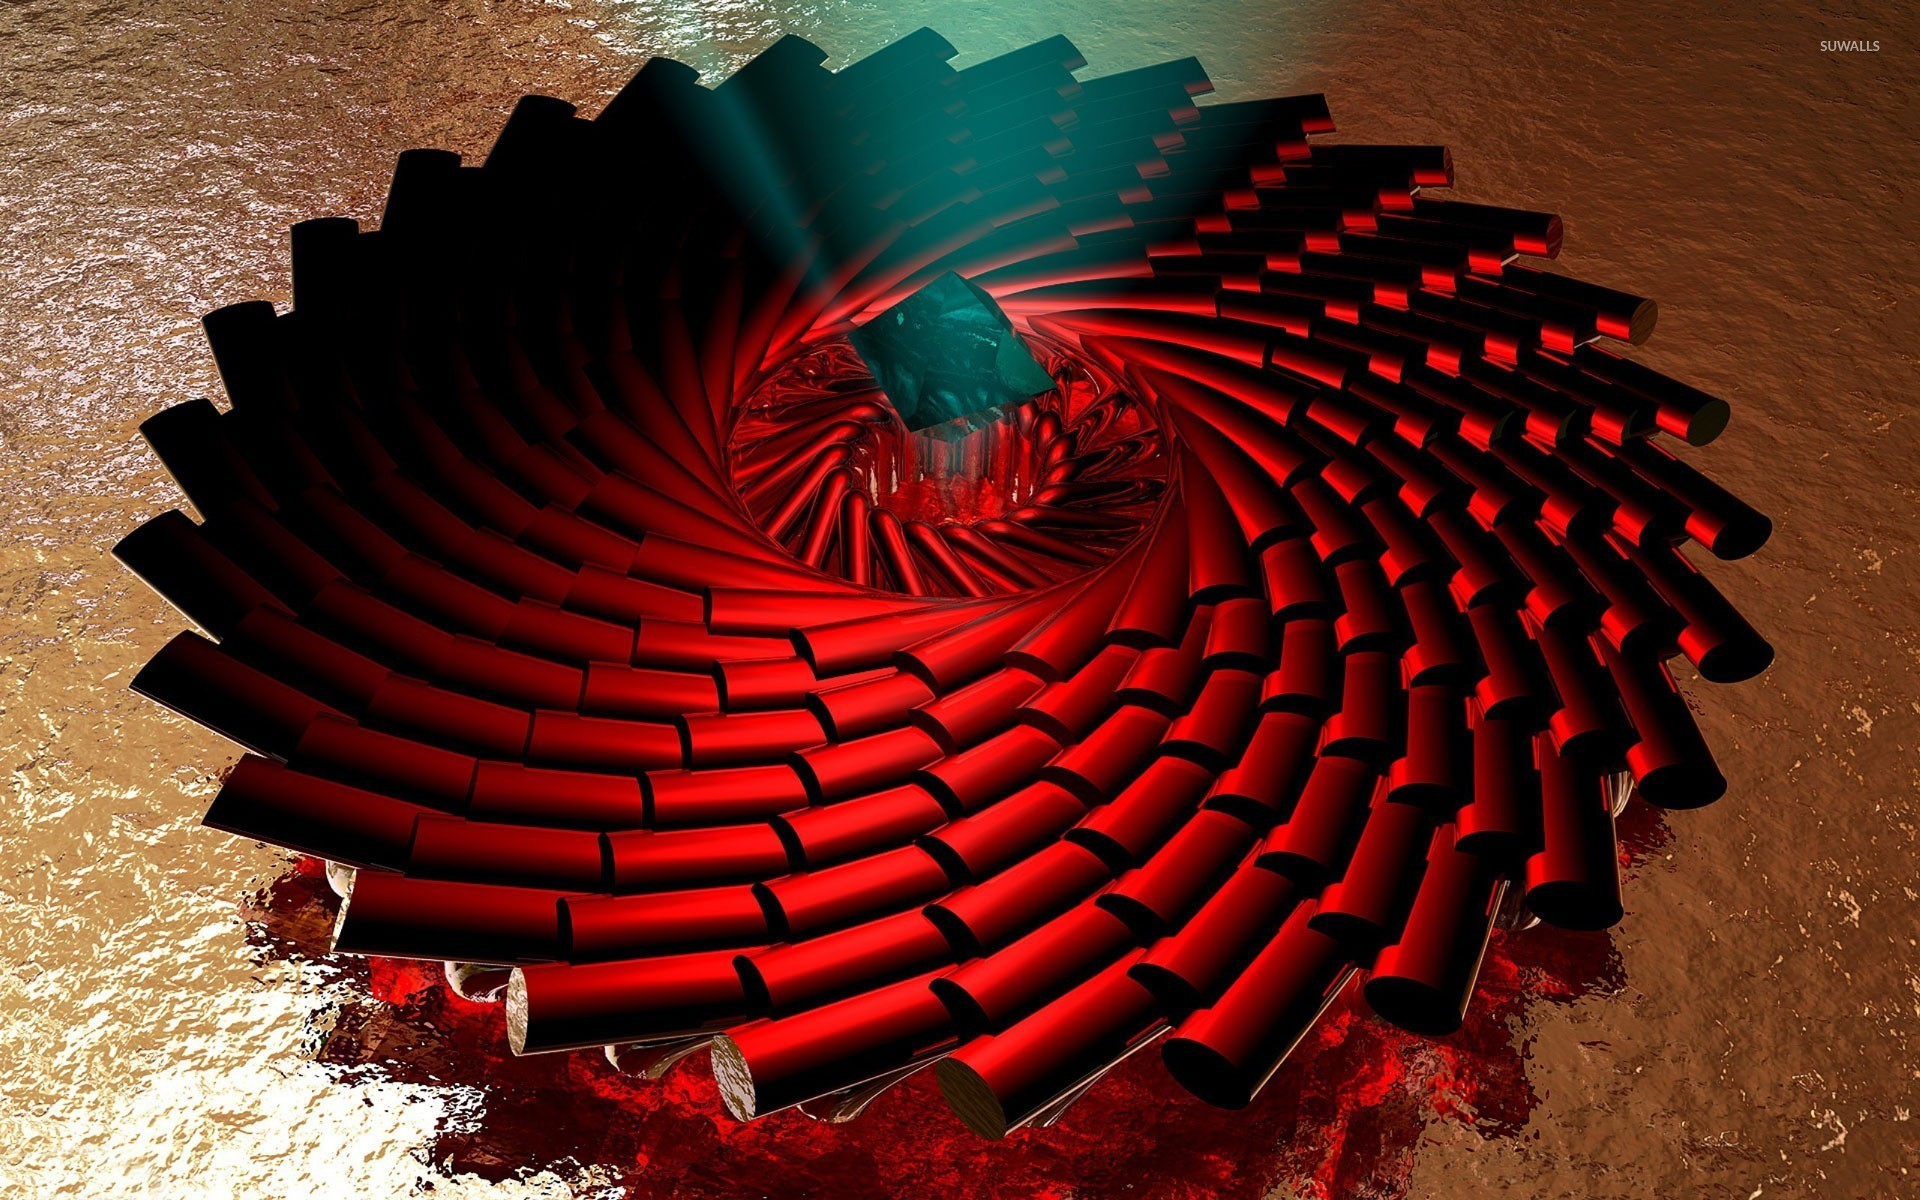 Spiraling red pillars wallpaper 3d wallpapers 24536 for 3d wallpaper red